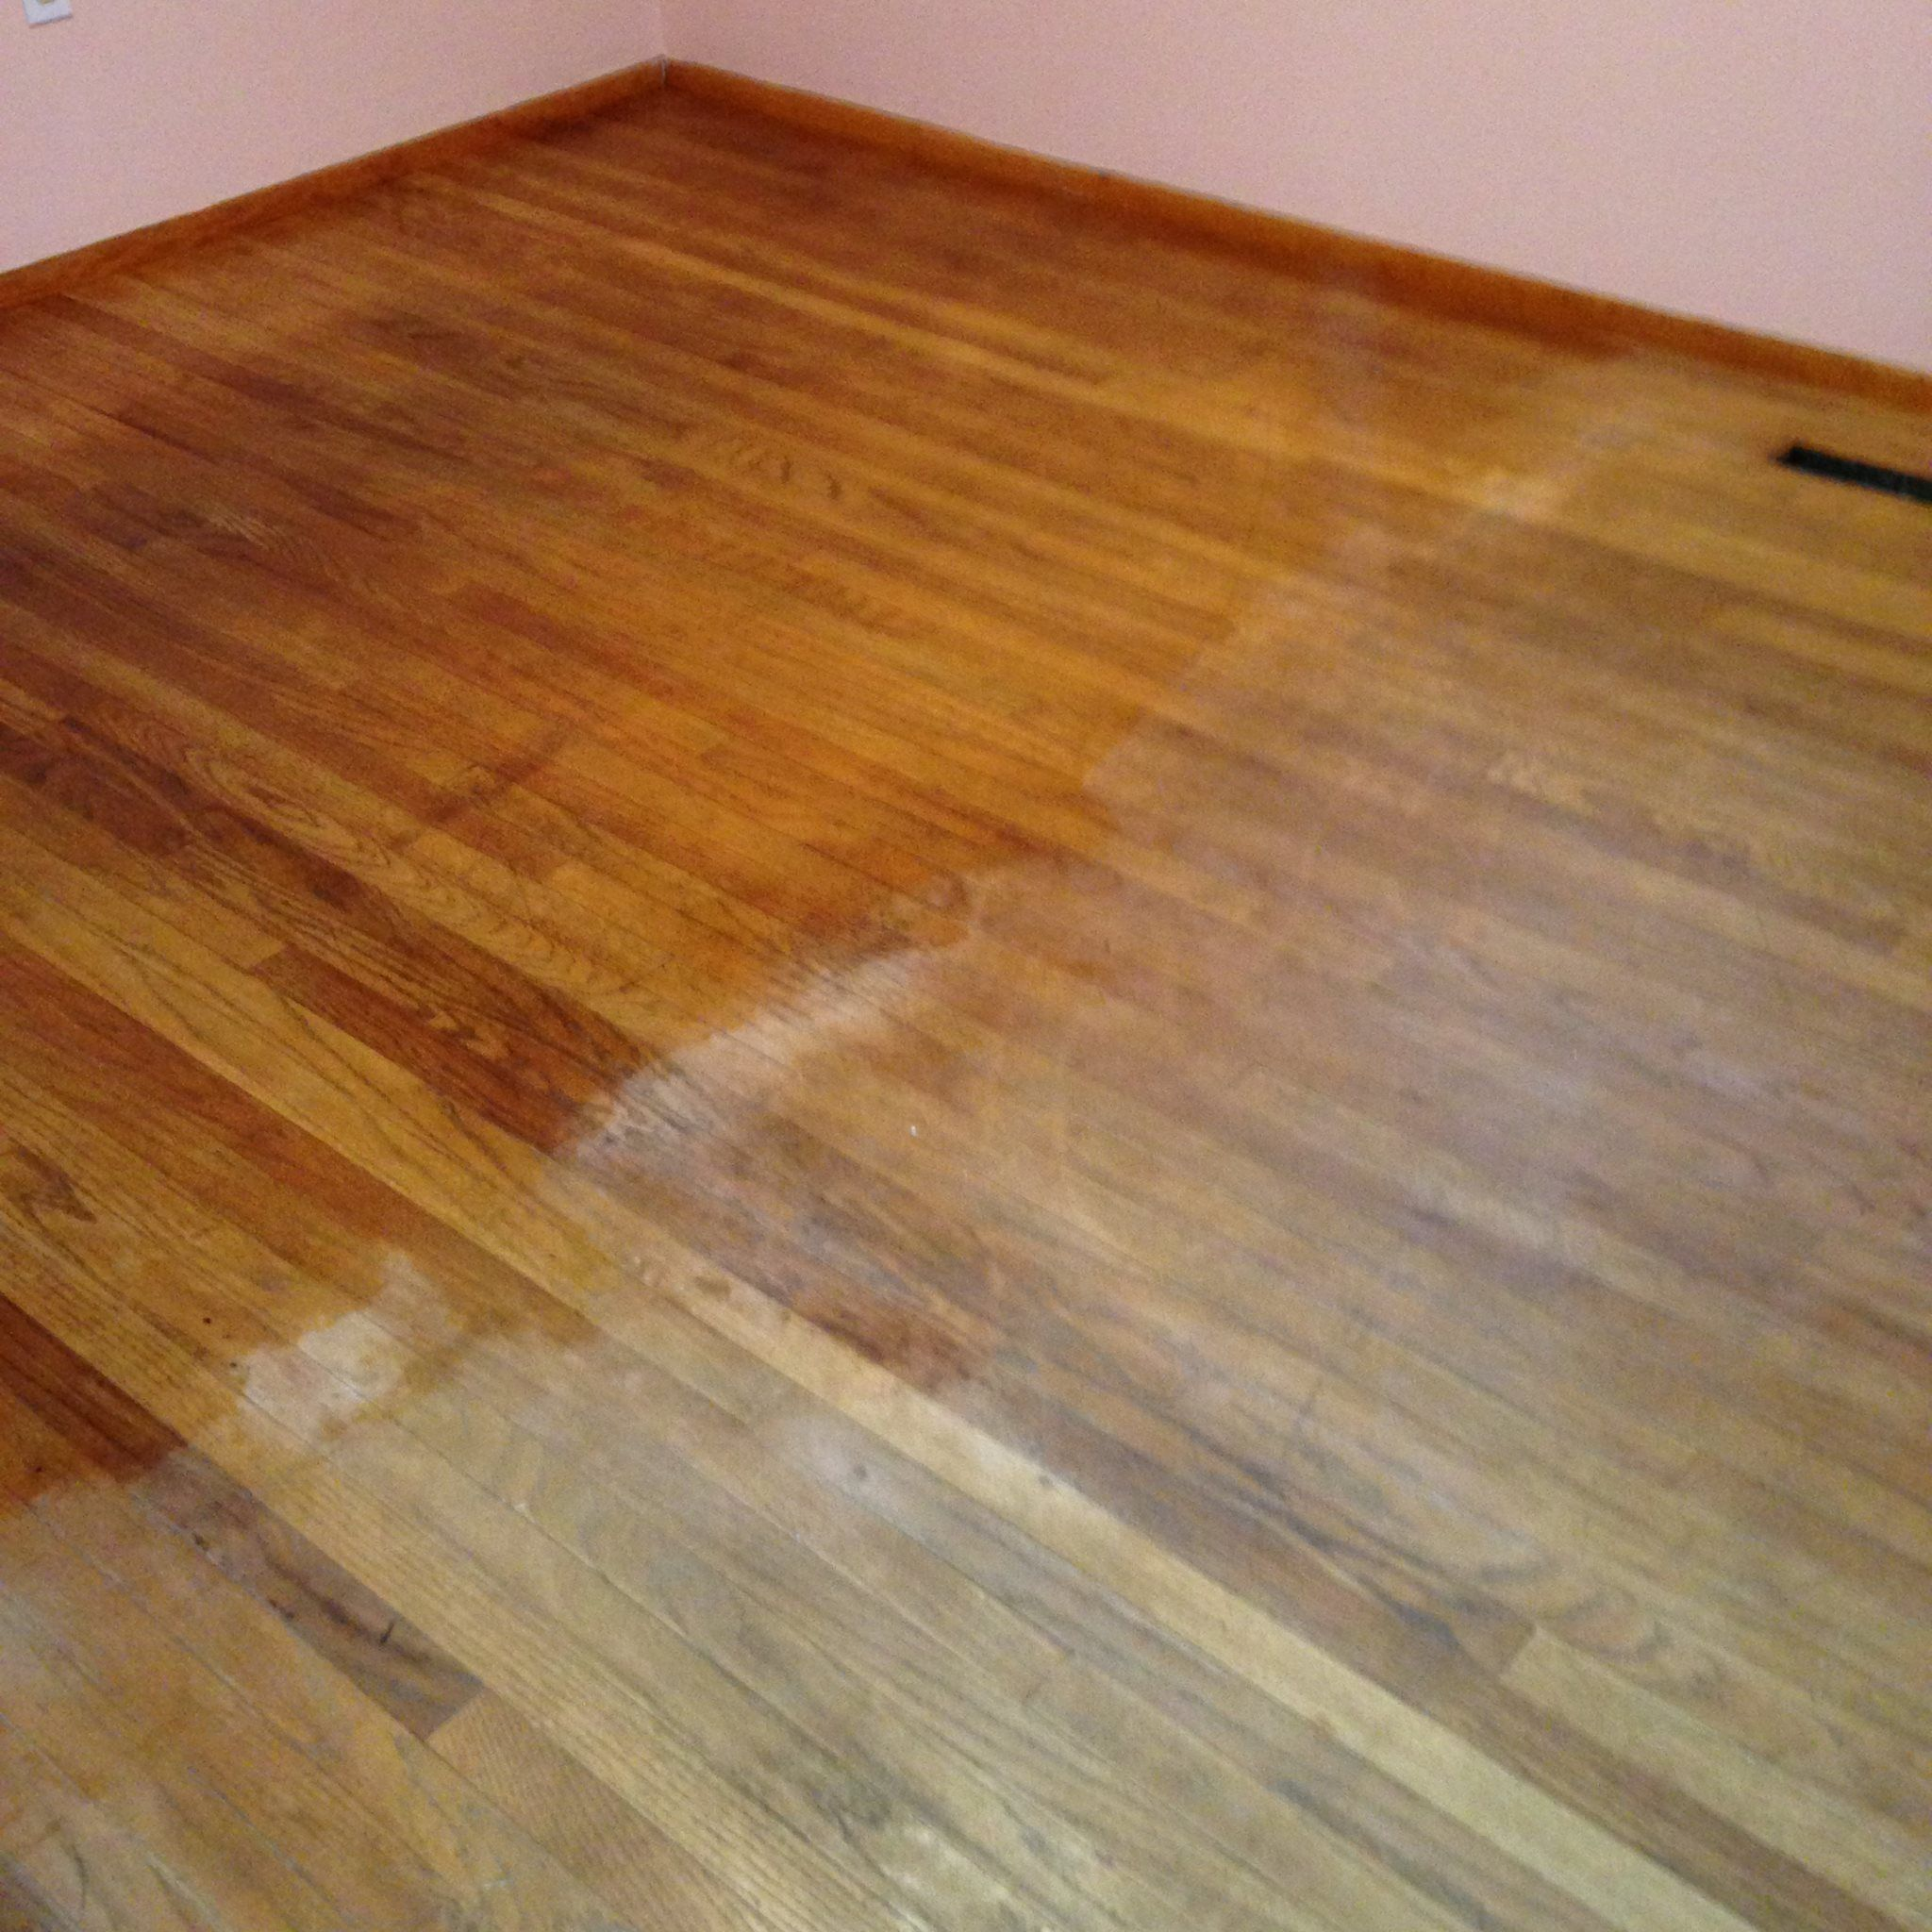 desk and an polishcleaner cleaner before lightlycrunchy furniture after polish laminate oil floors wood floor vinegar